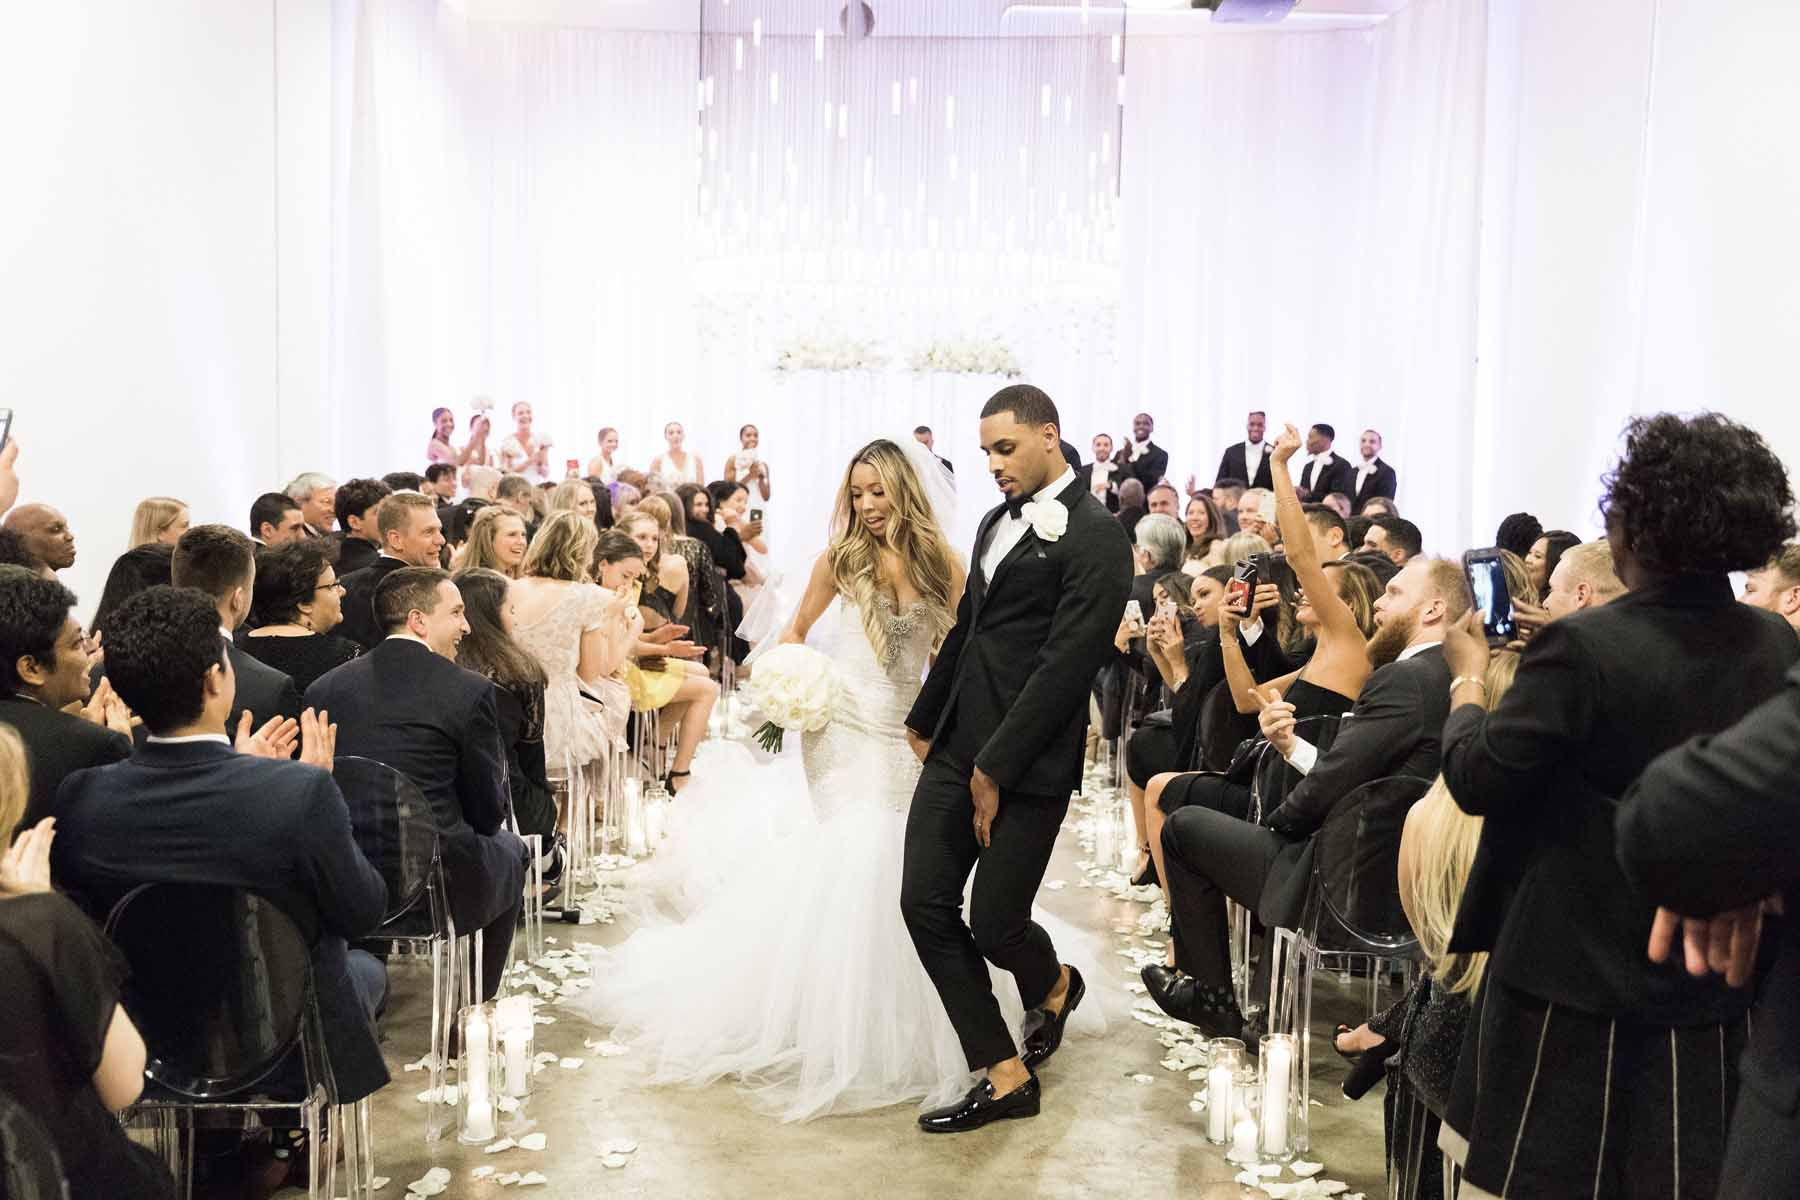 Just married at Canvas Event Space Seattle: bride and groom dancing happily in wedding aisle